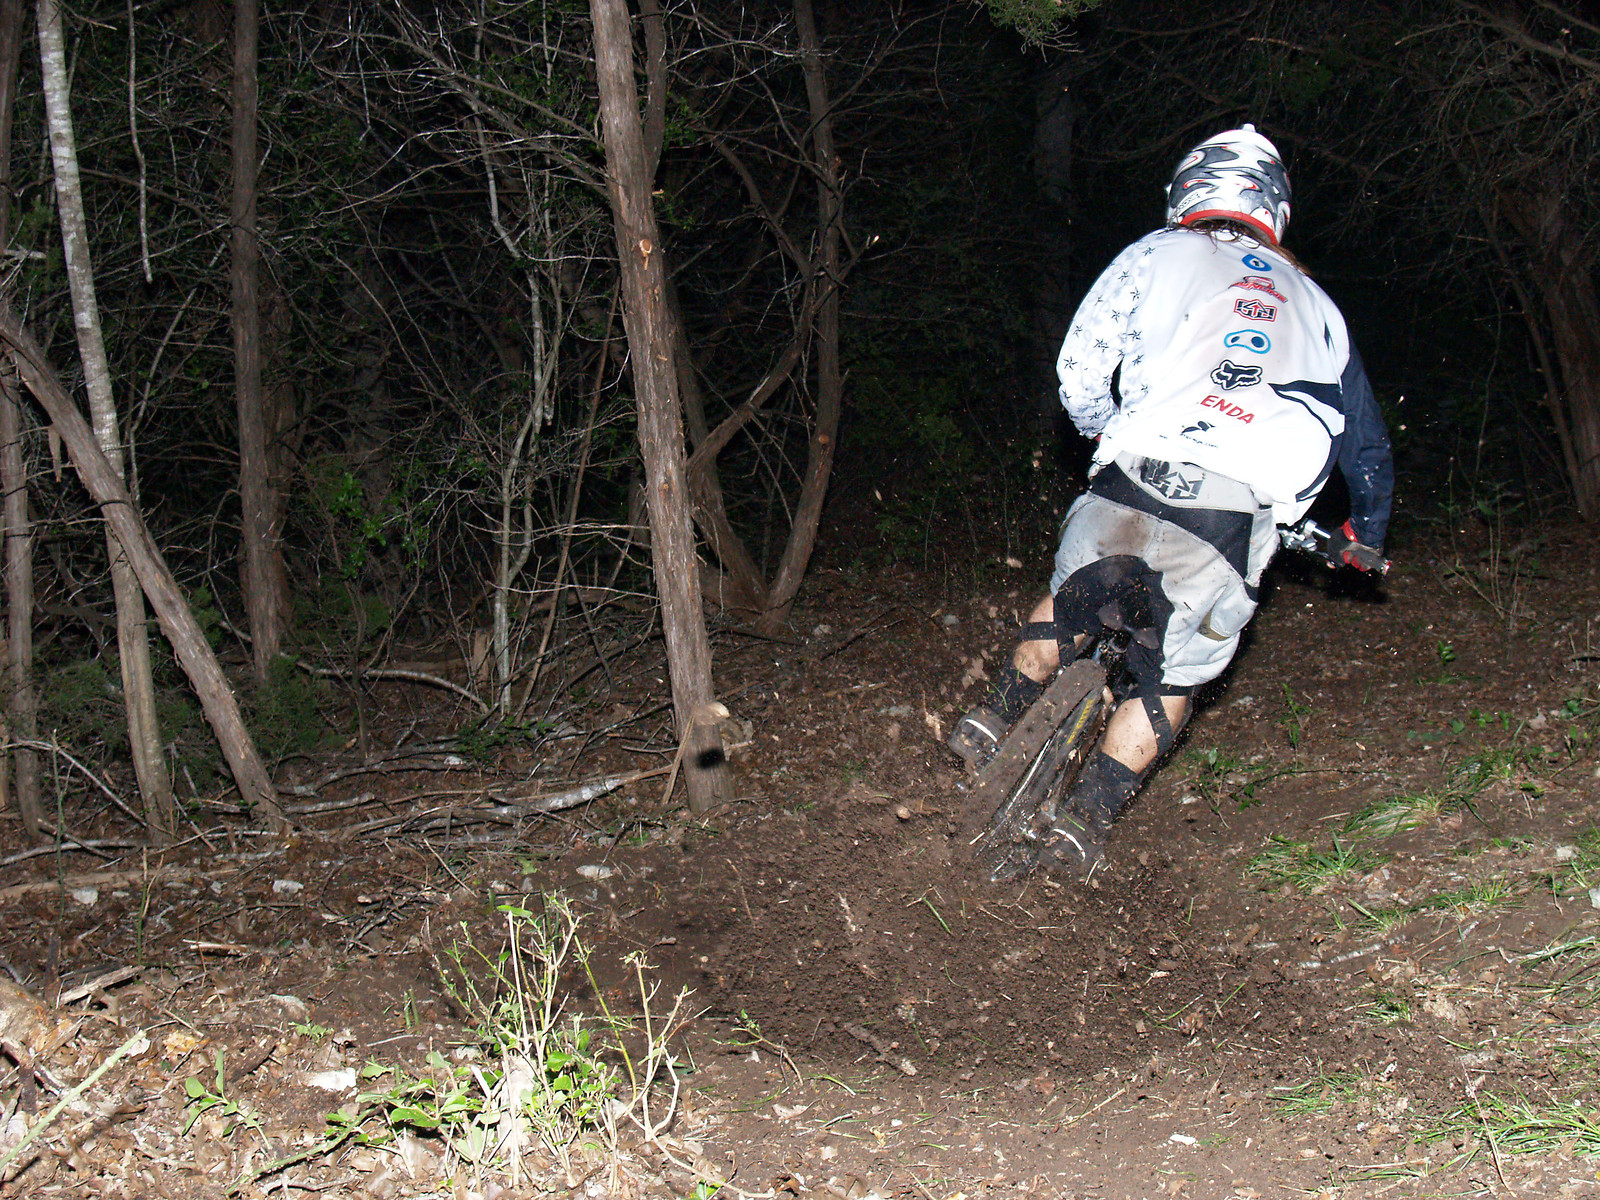 Loose - Pwest - Mountain Biking Pictures - Vital MTB